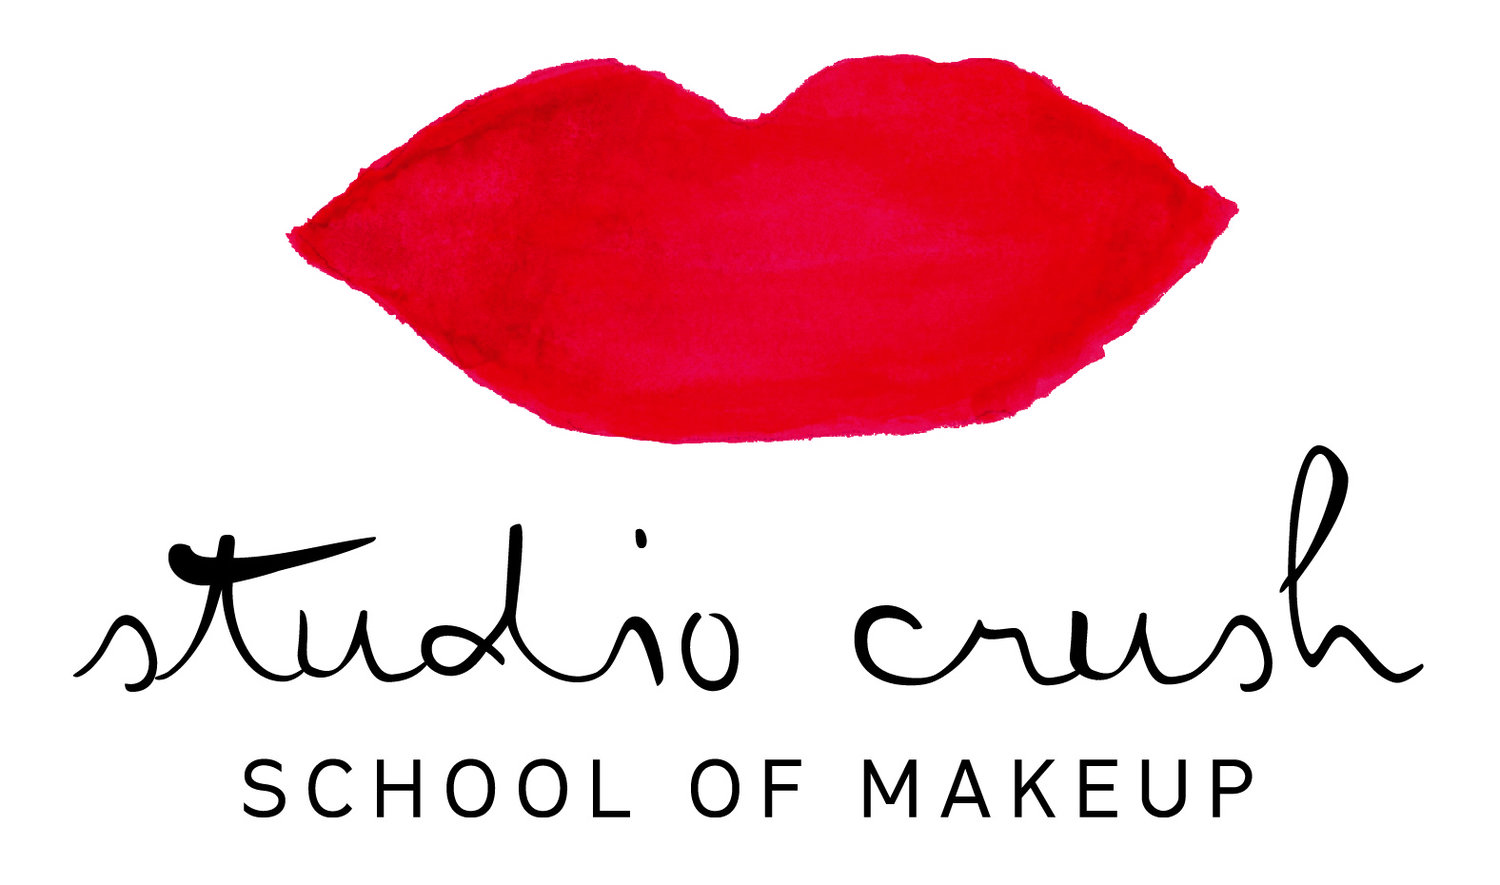 Studio Crush School of Makeup